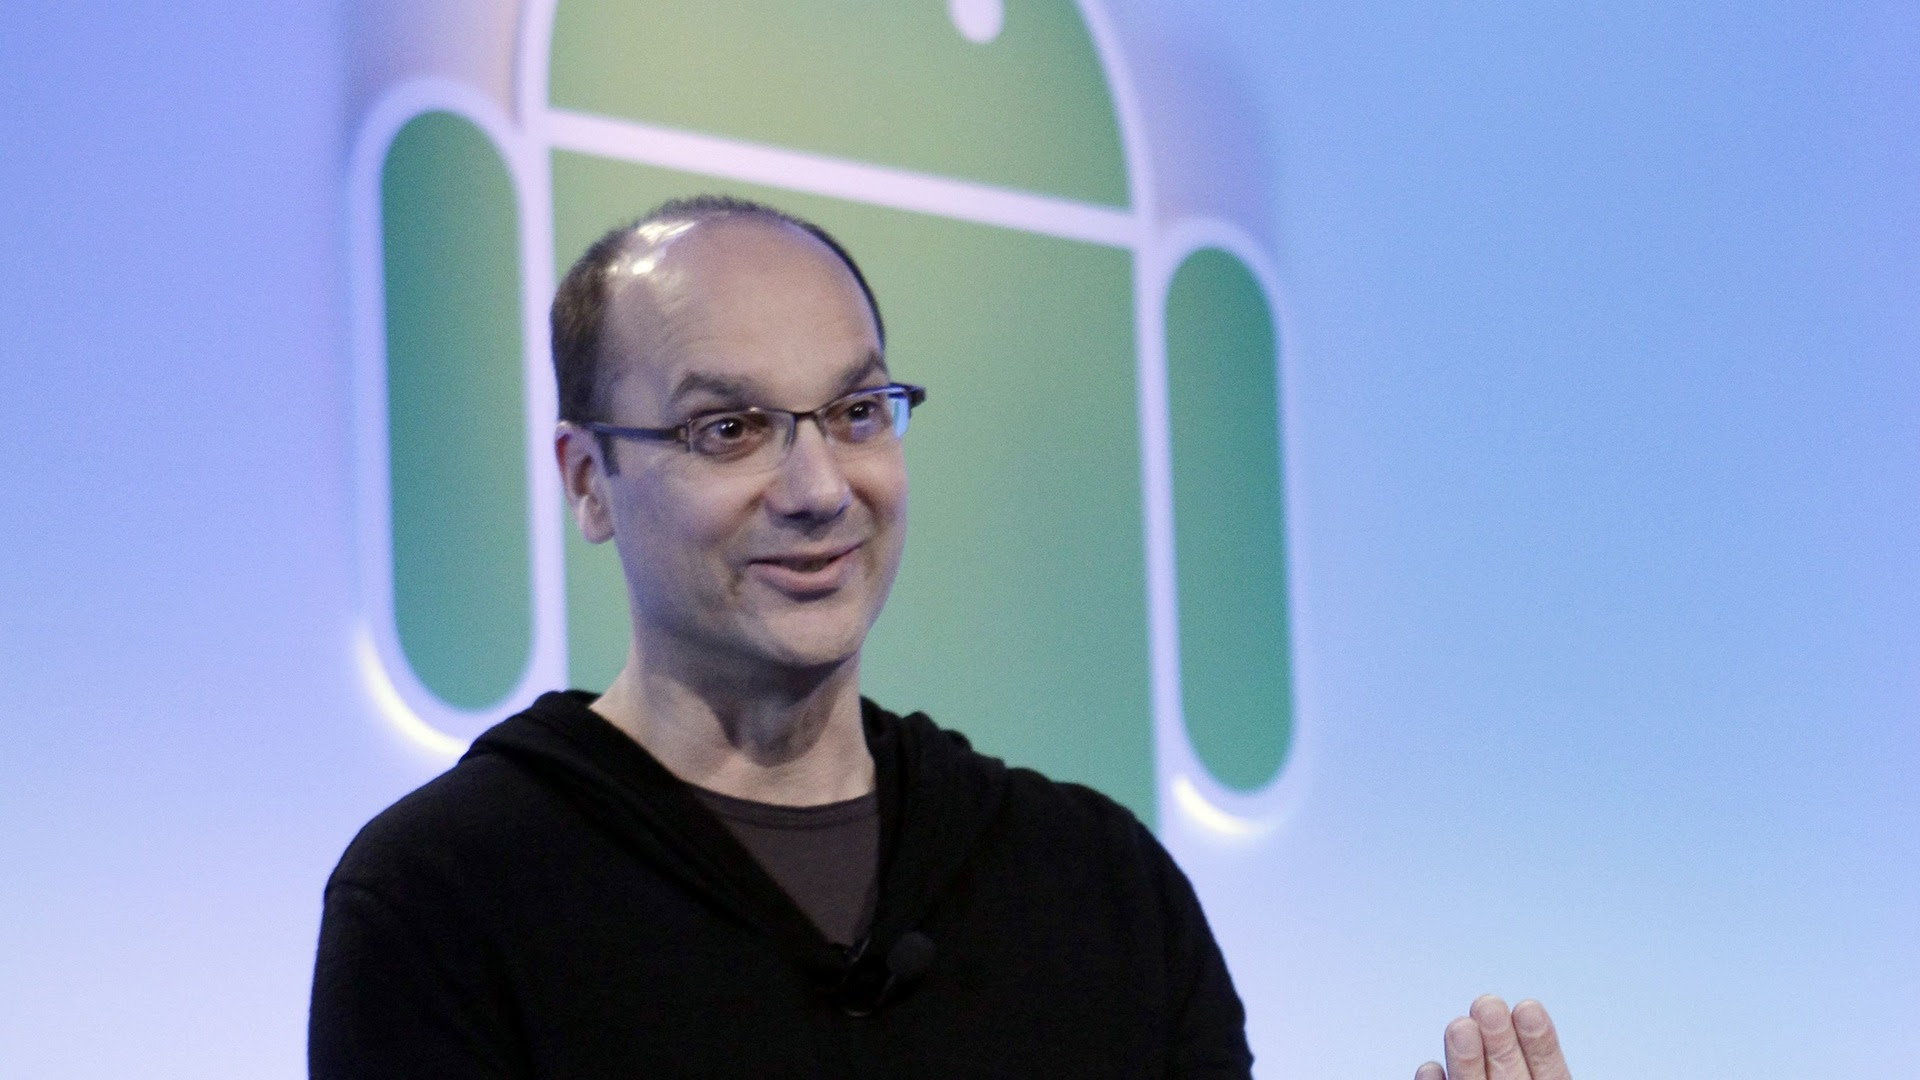 Andy Rubin, Googles robot chief and Android founder, steps down